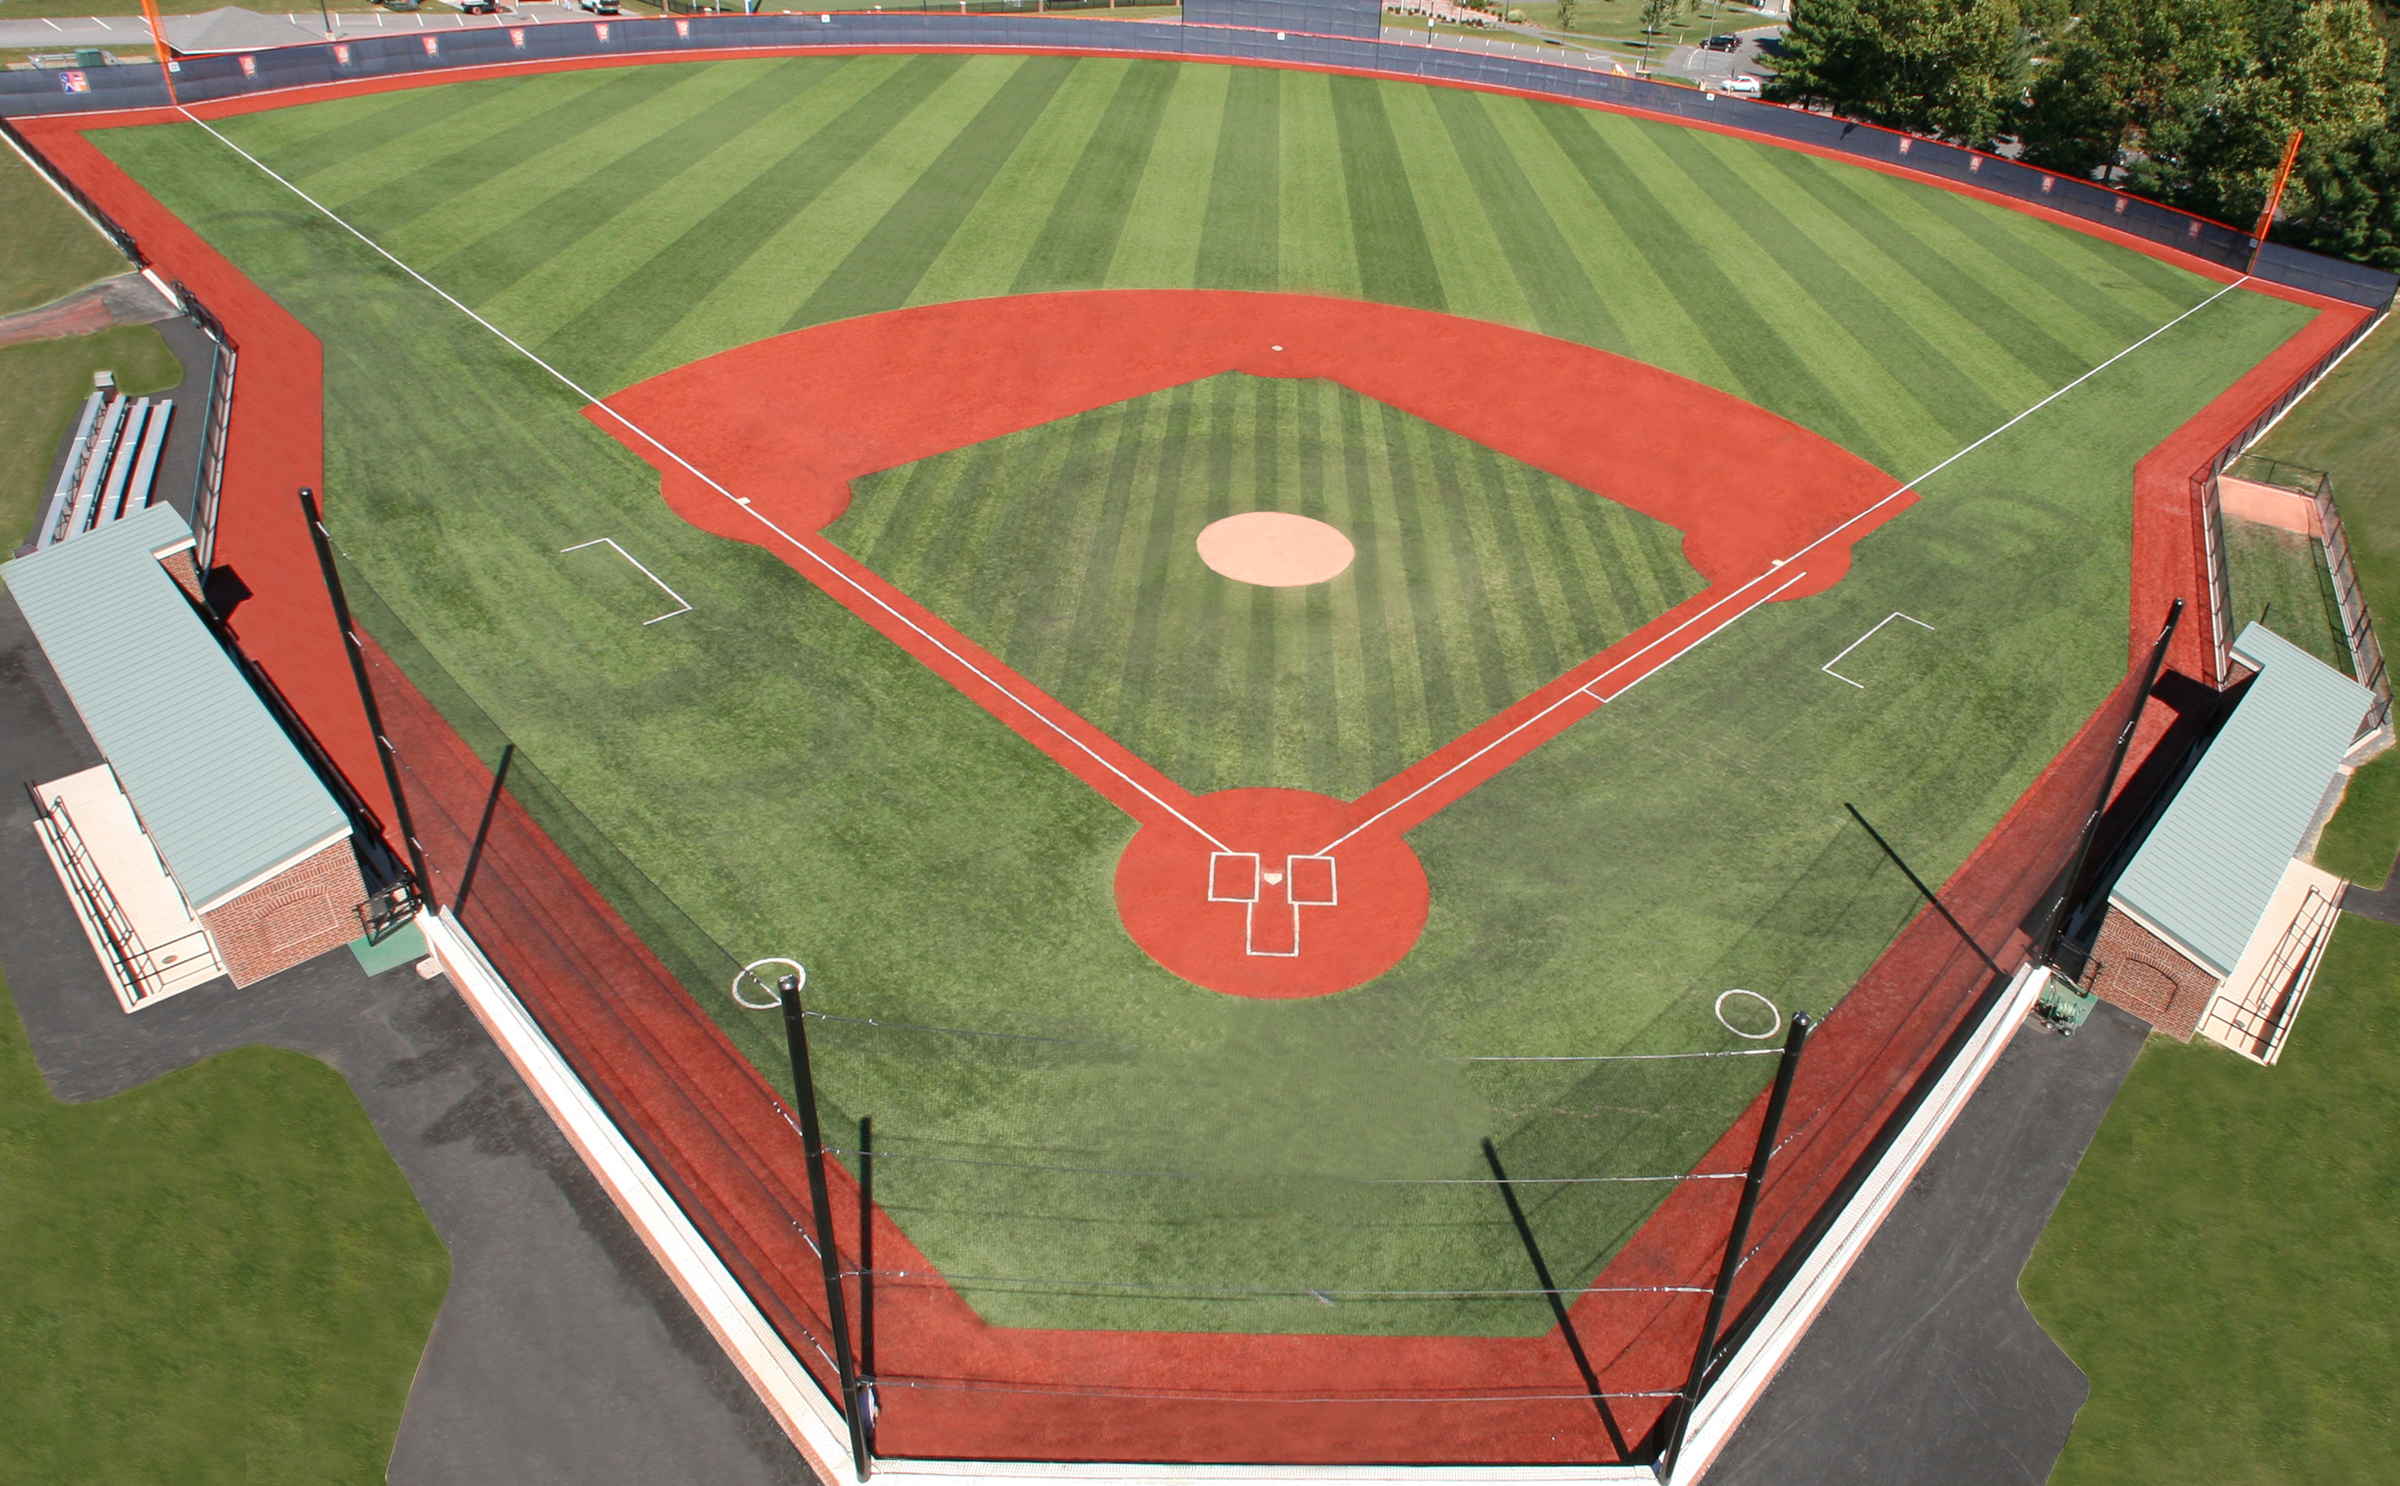 The new Bard stadium will be similar to the field constructed at Bucknell University, shown here. Courtesy photo.